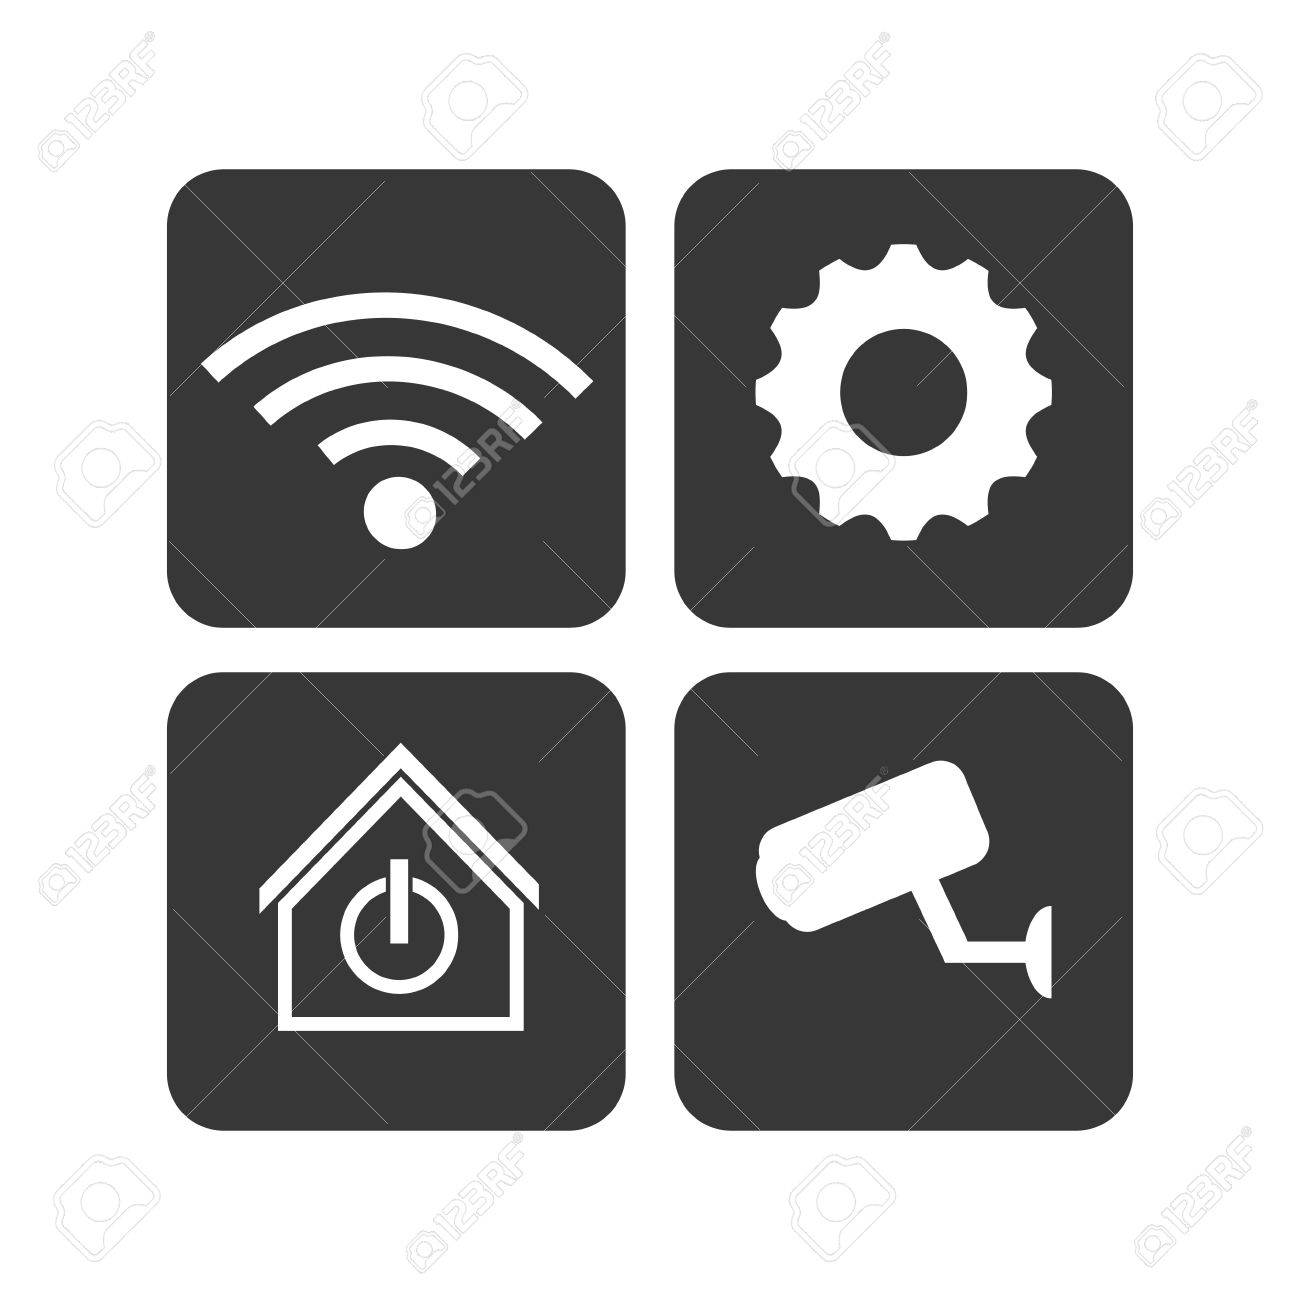 Rahmen CCTV-WiFi Gang Intelligente Haus-Home-Technologie-App-Icon ...